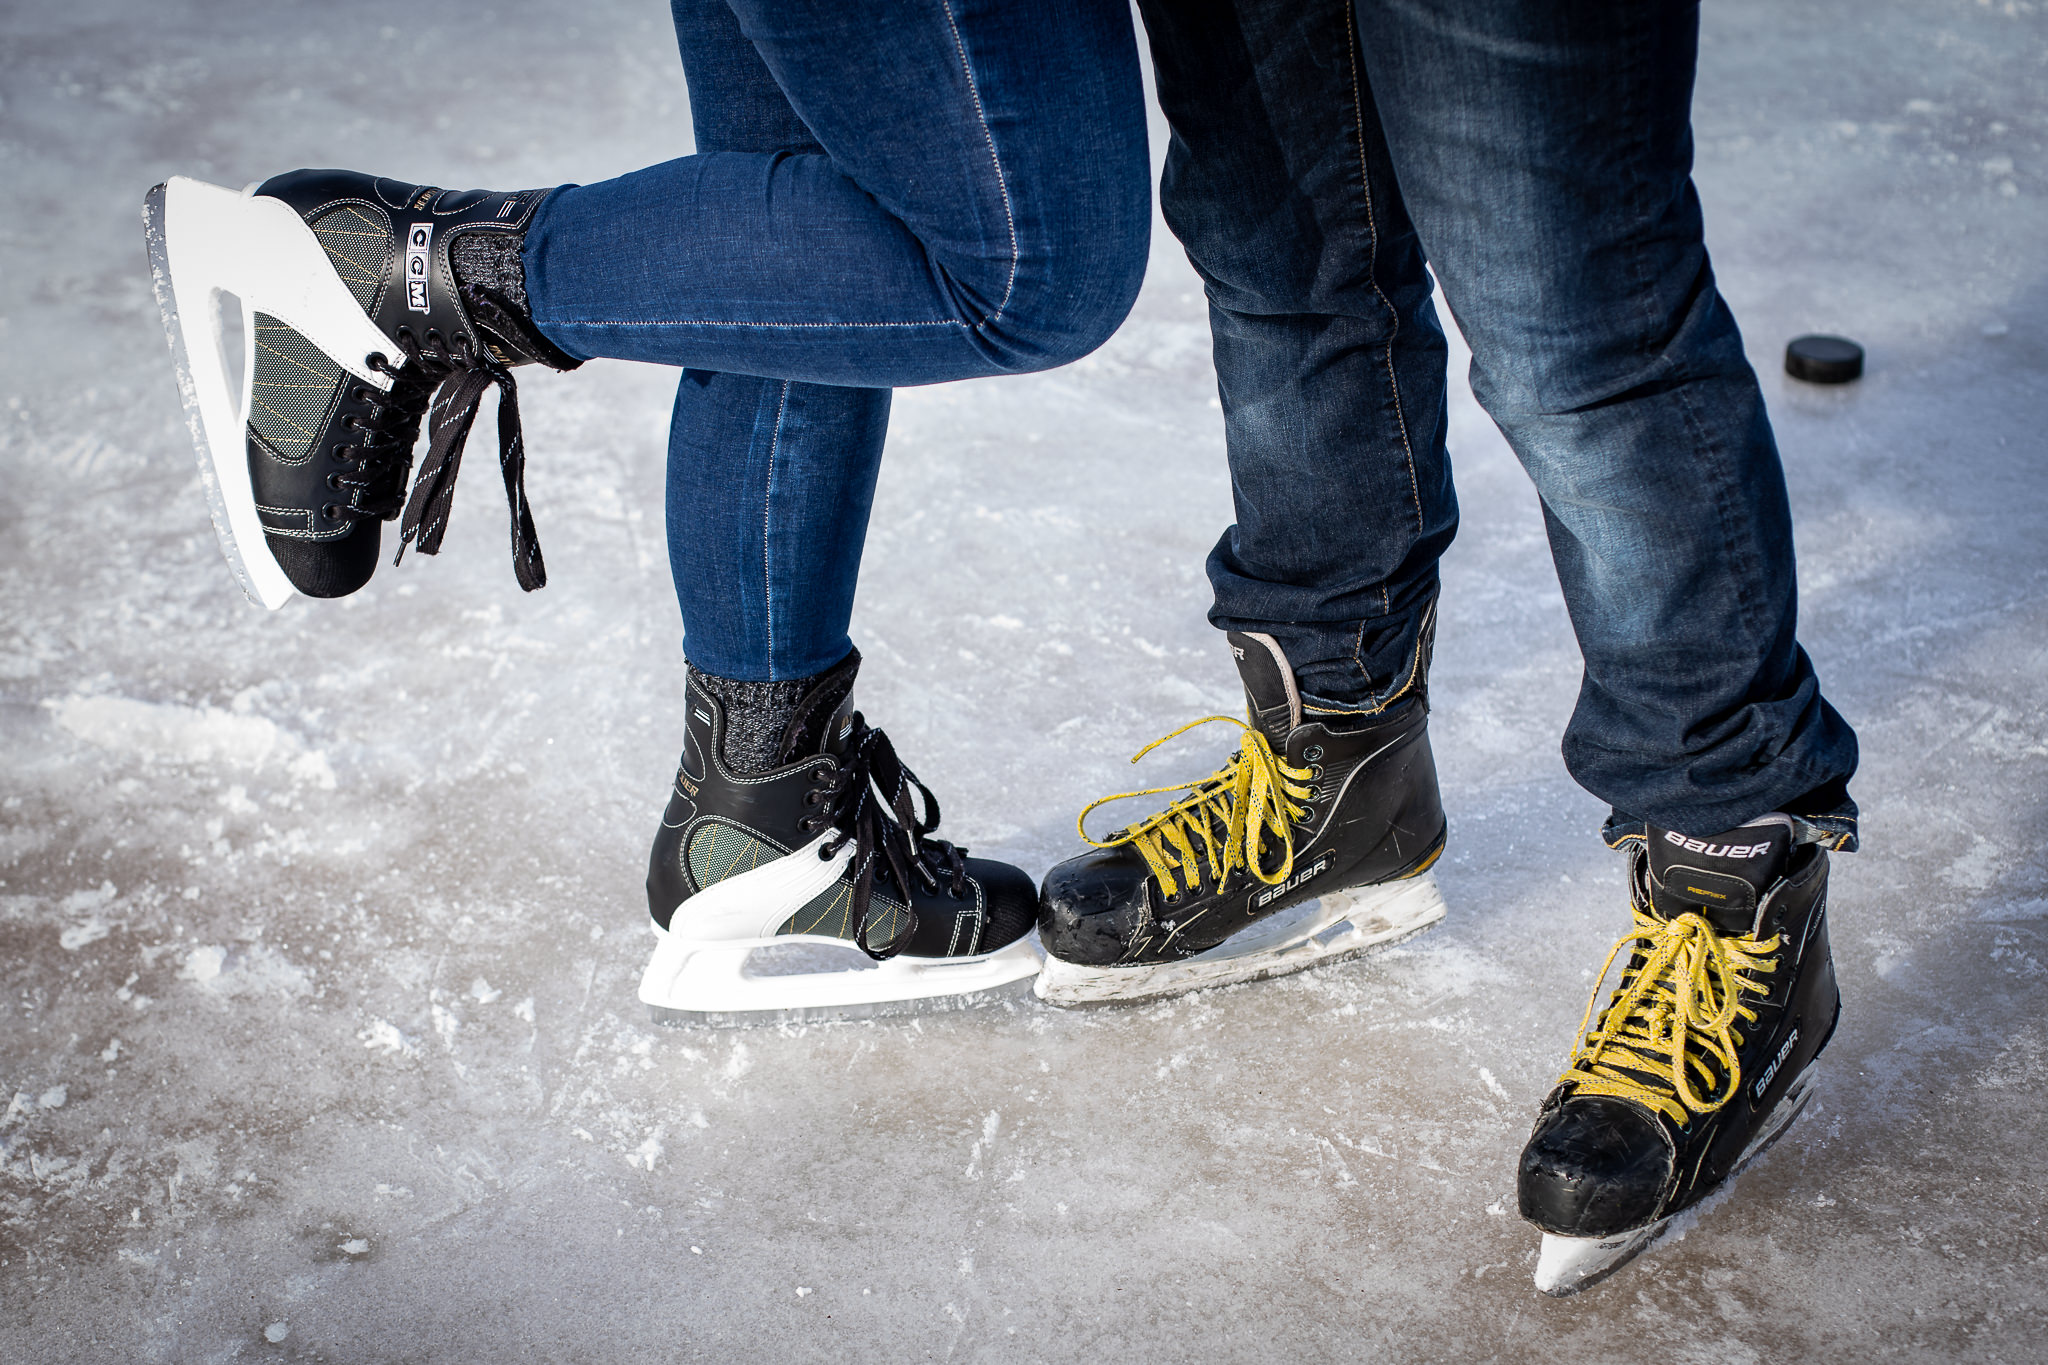 ice-skating-hockey-engagement-photos-9.jpg